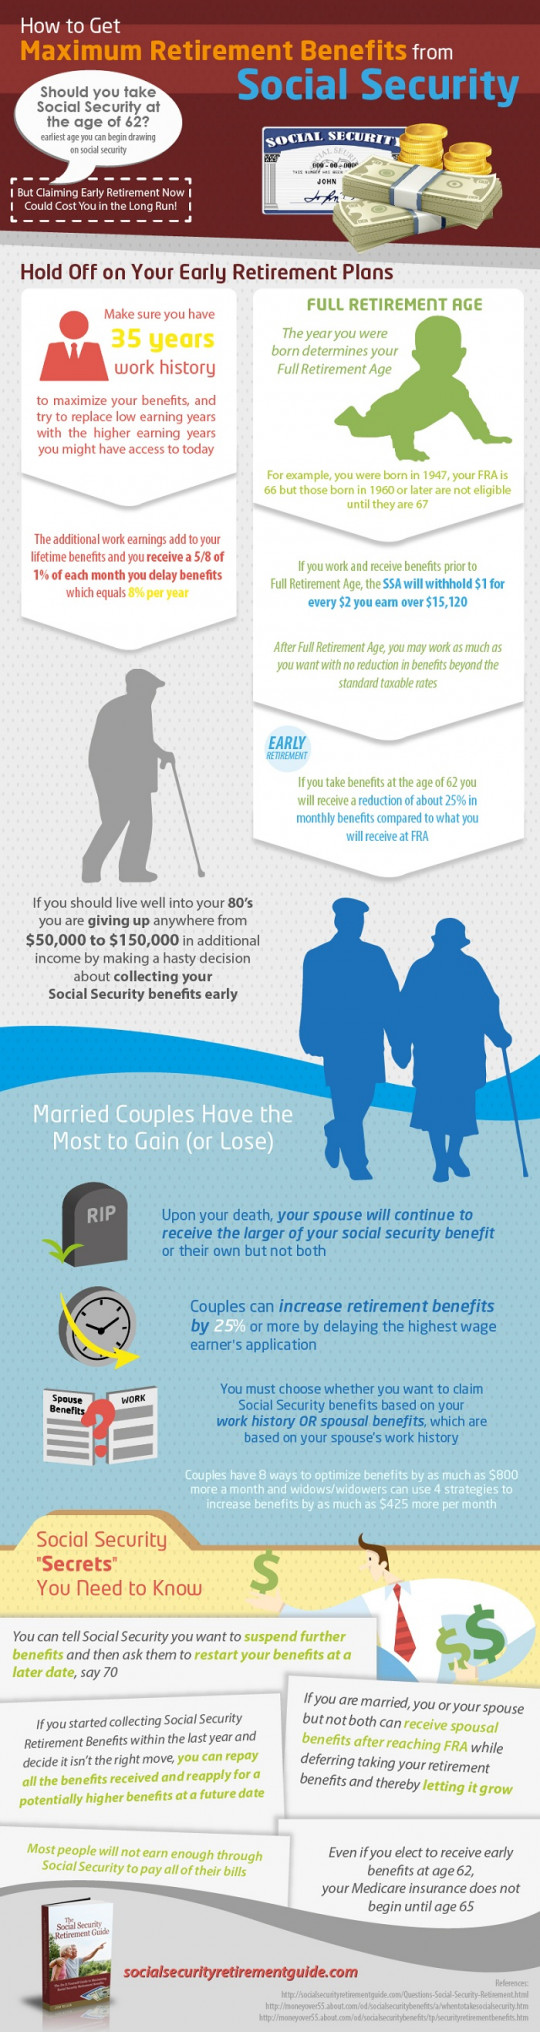 How to Get Maximum Retirement Benefits from Social Security